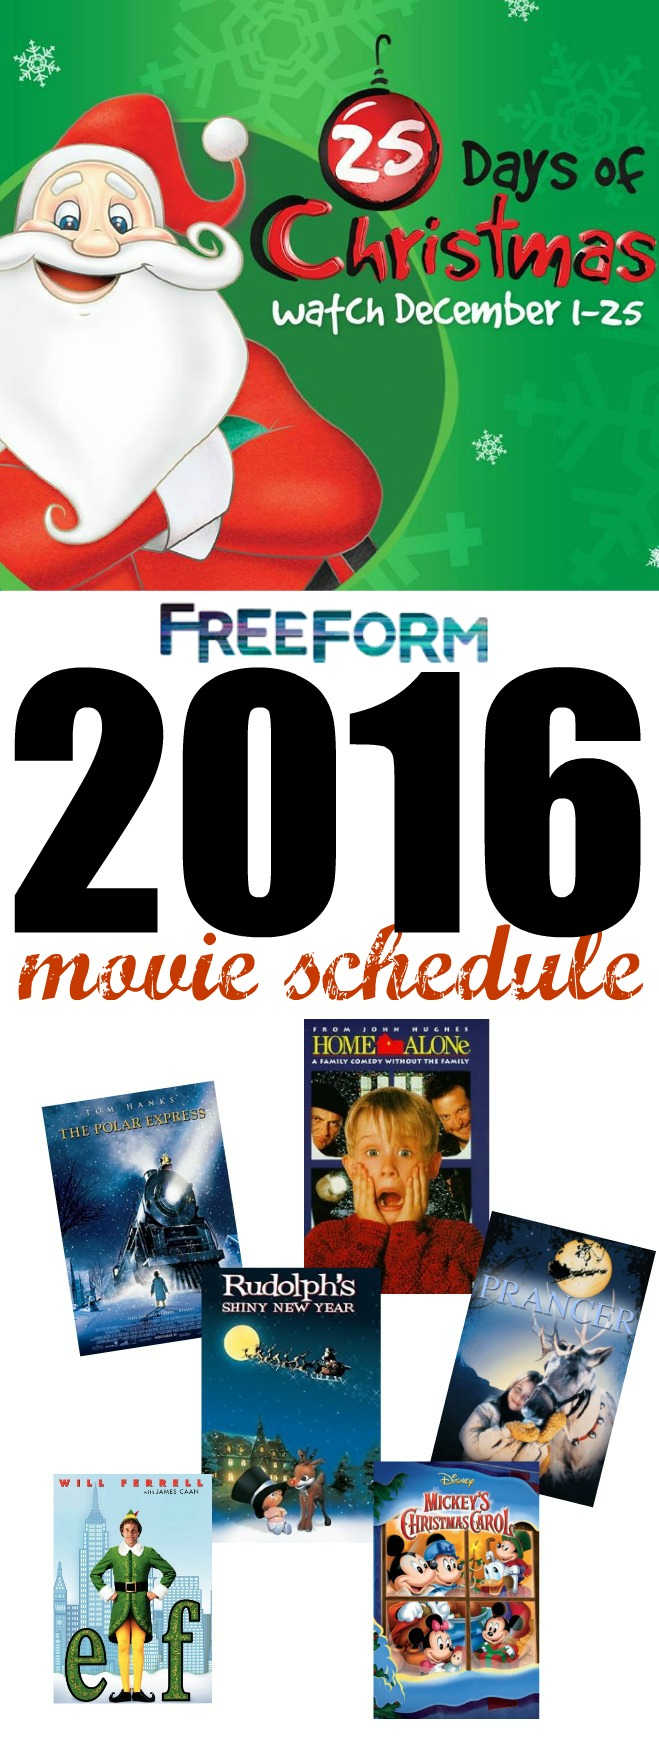 Freeform Christmas Schedule.Freeform Countdown To 25 Days Of Christmas Tv Schedule For